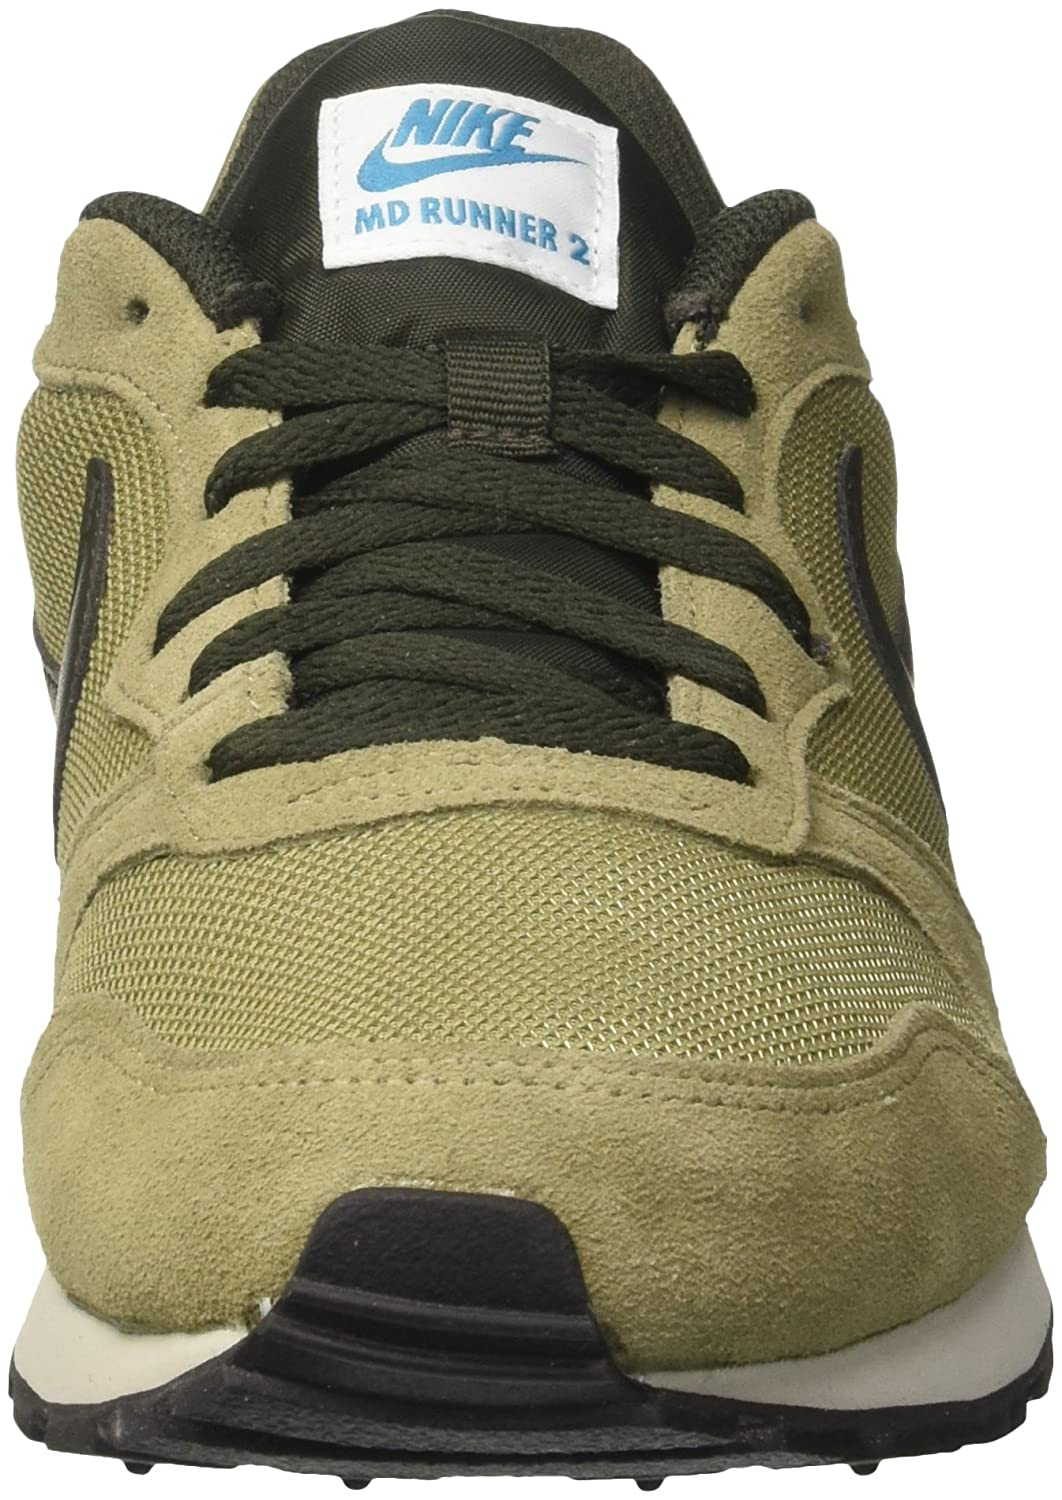 various colors 45899 7eb6a Nike MD Runner 2, Chaussures de Running Homme, Vert (Neutral  Olive Seqouia-Lt Blue Fury 201), 40.5 EU  Amazon.fr  Chaussures et Sacs